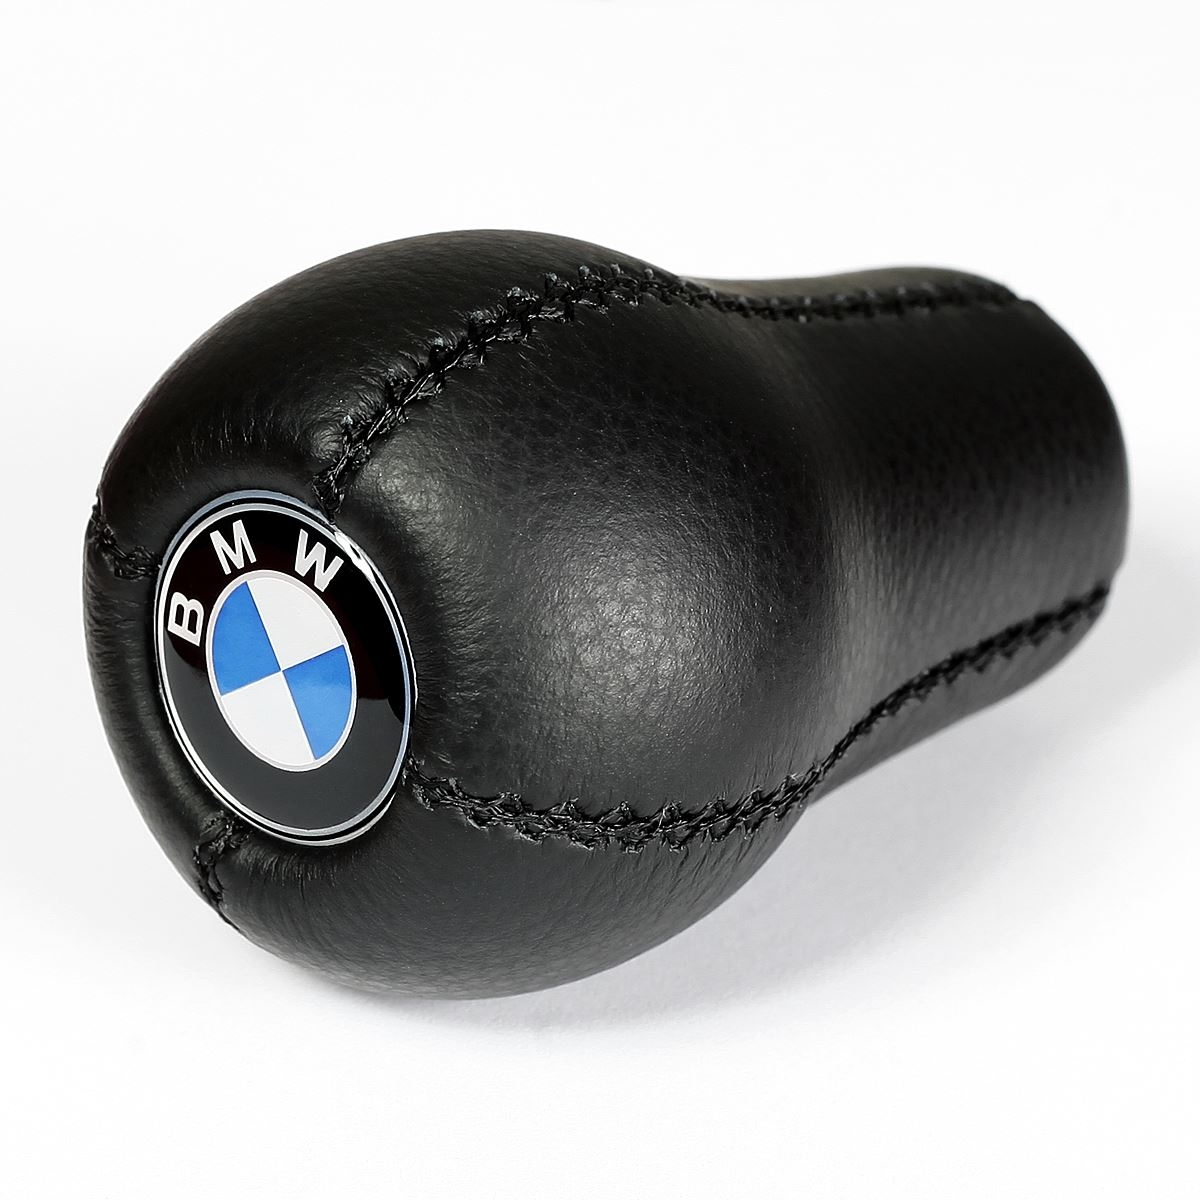 BMW E39 M5 >> BMW Leather Classic Gear Shift Knob Stick 5/6 Speed Manual ...